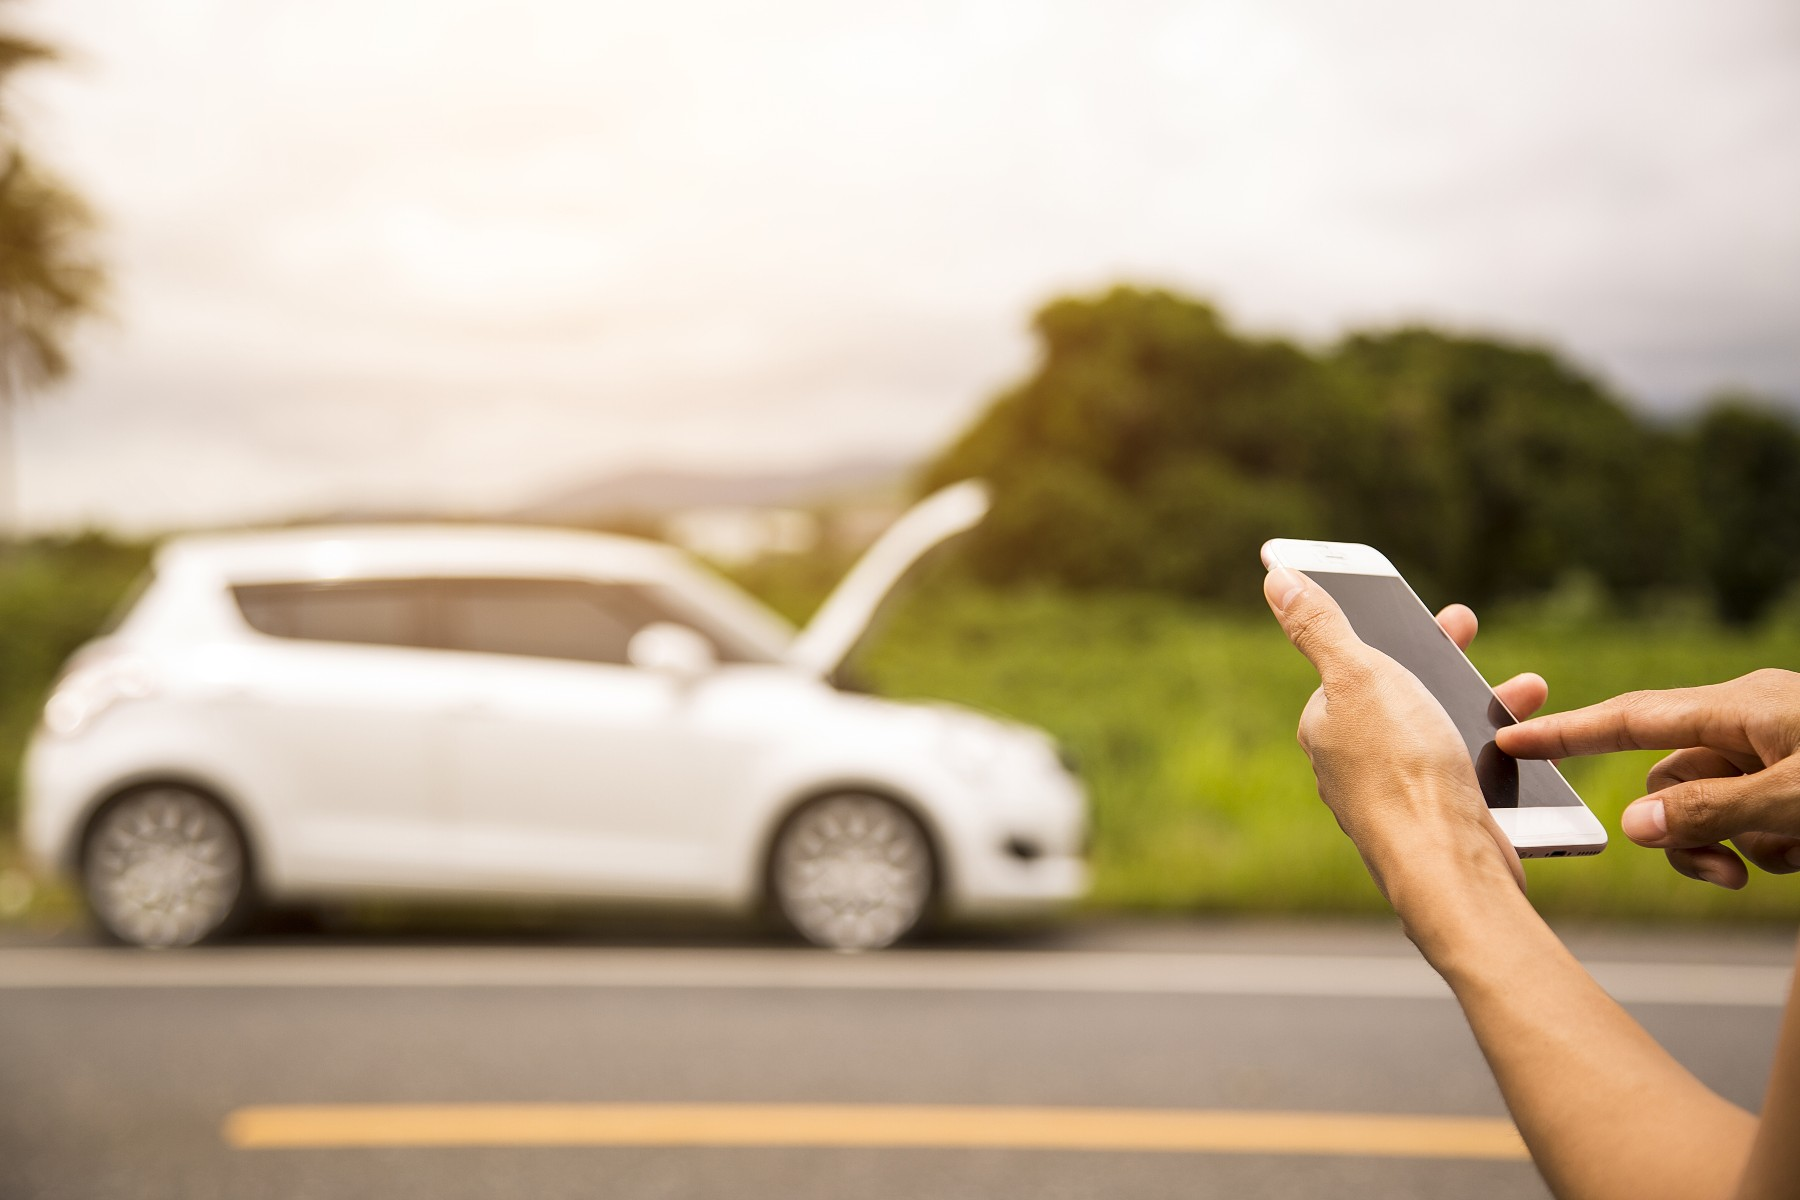 car breakdown insurance in Switzerland, person calls for assistance on roadway